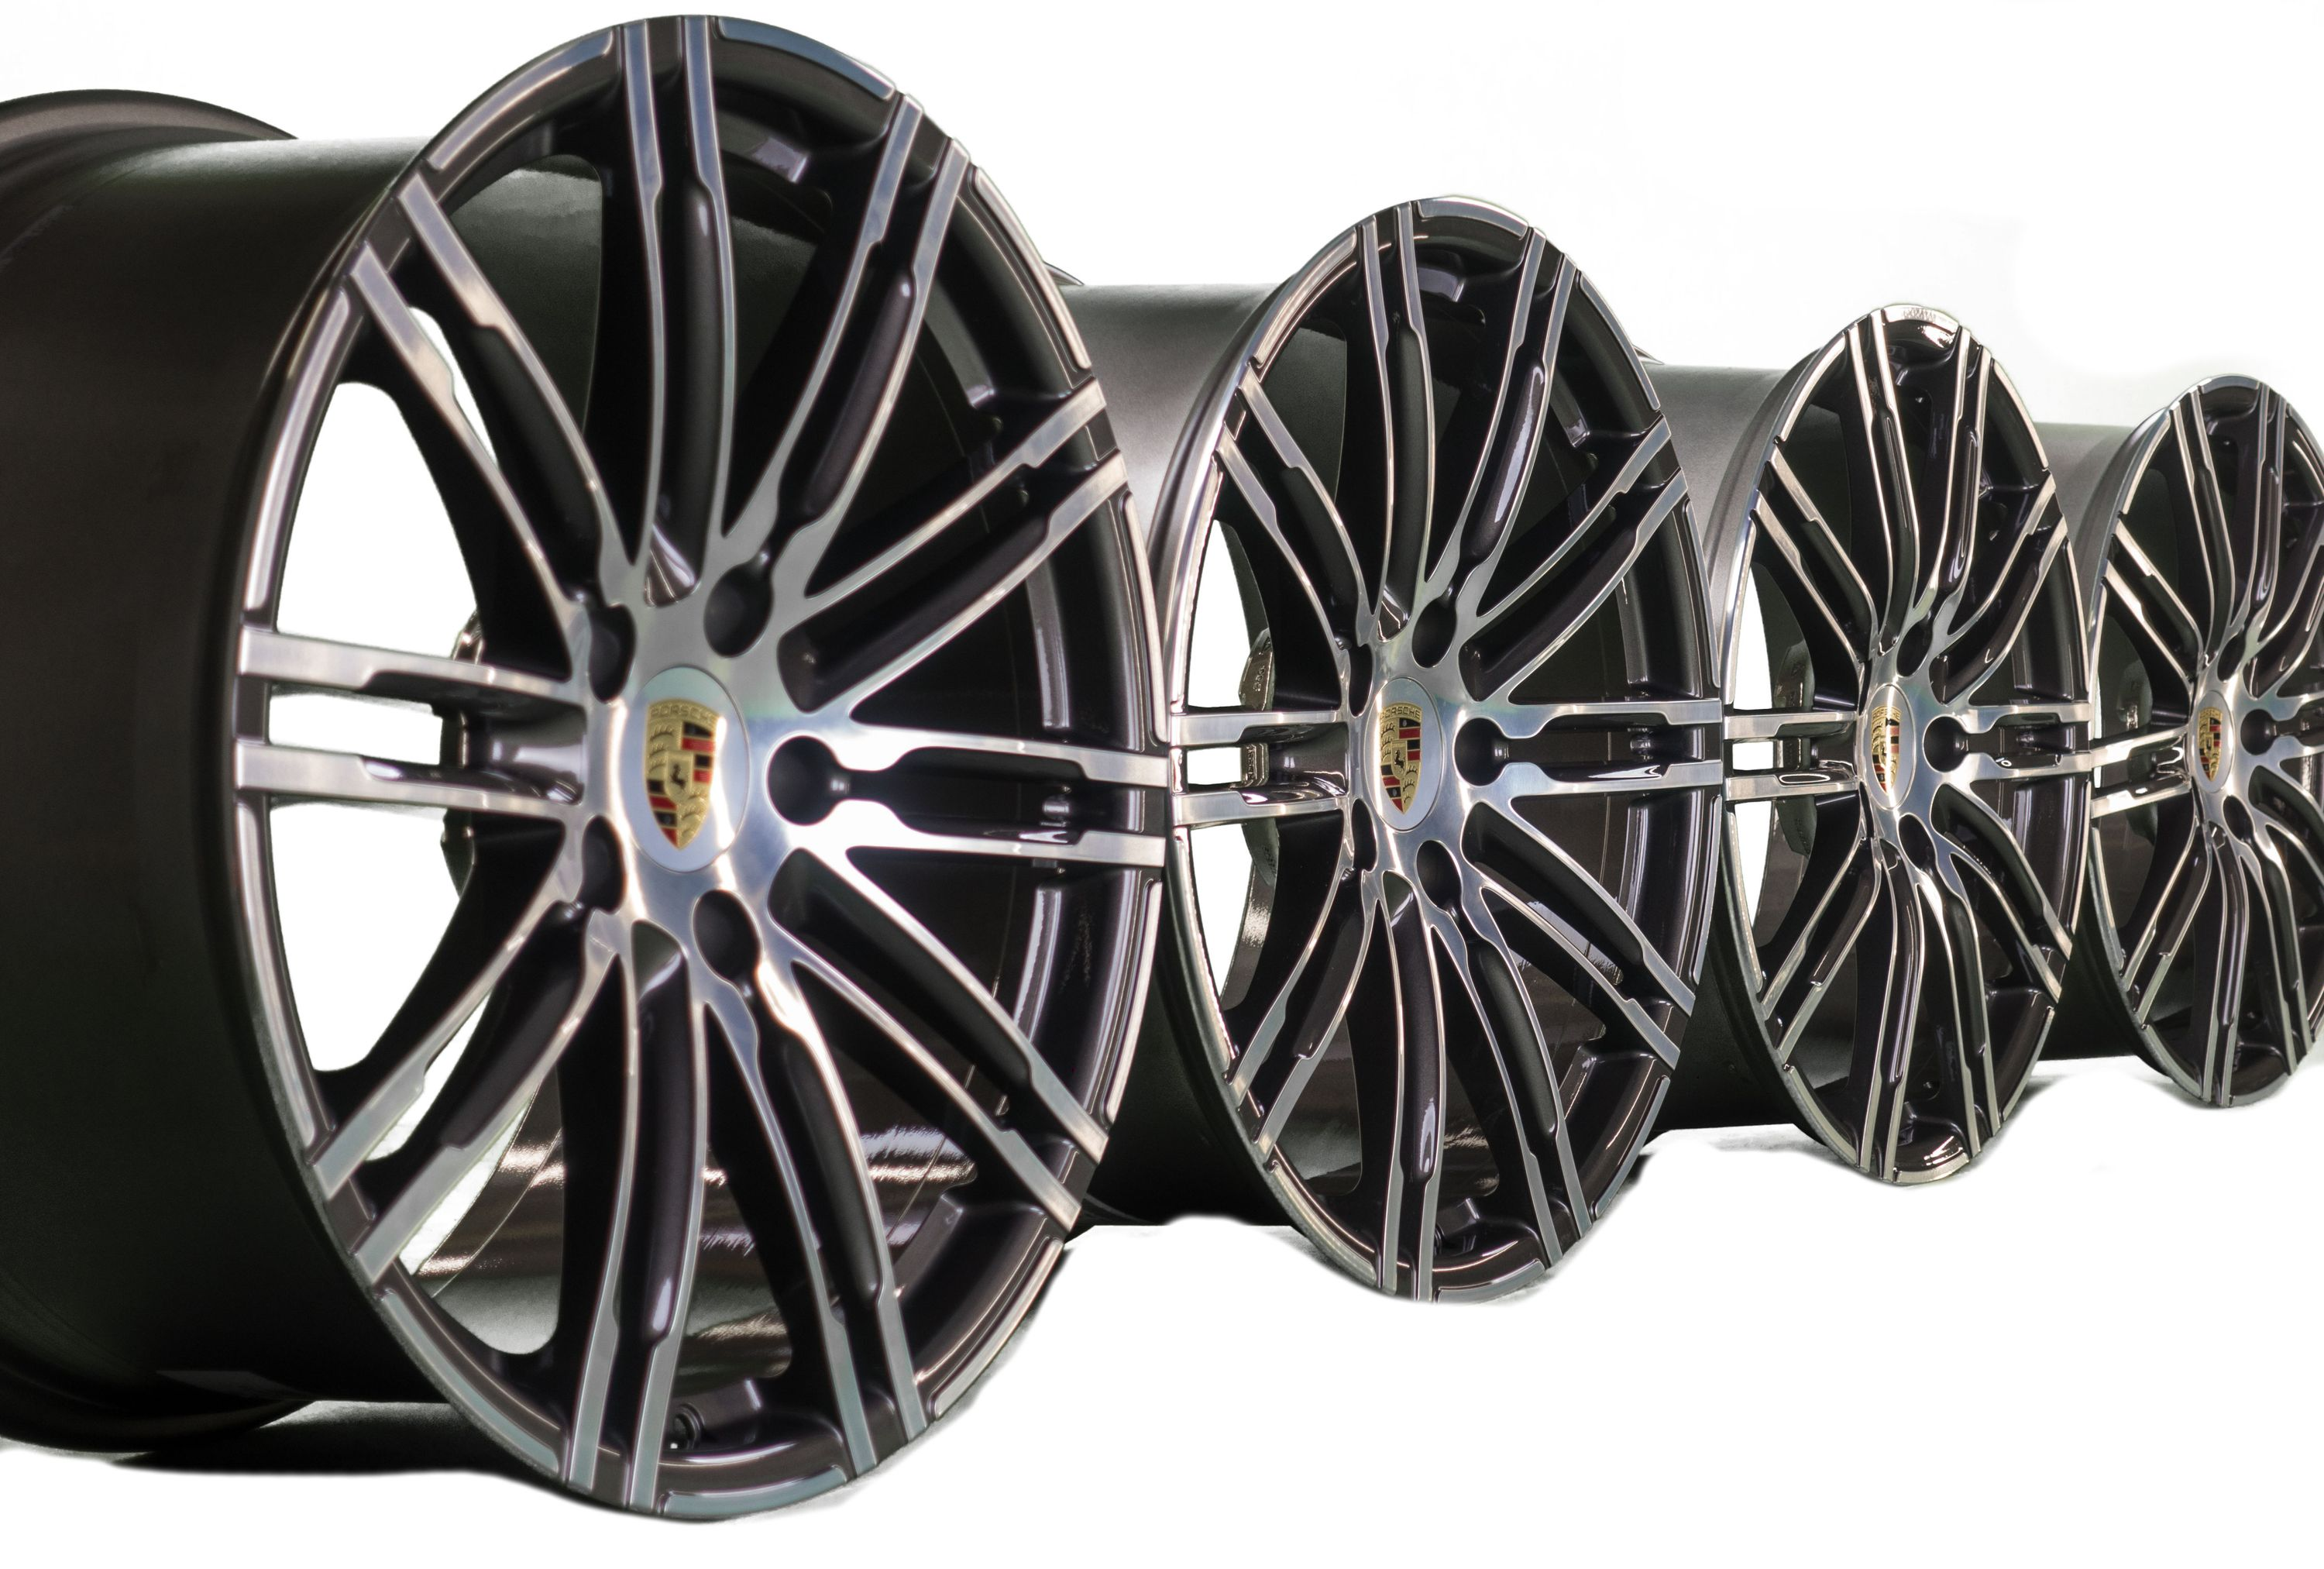 Details about Original Porsche 20 inch 911 991 Turbo III wheels facelift S  aluminum rims NEW